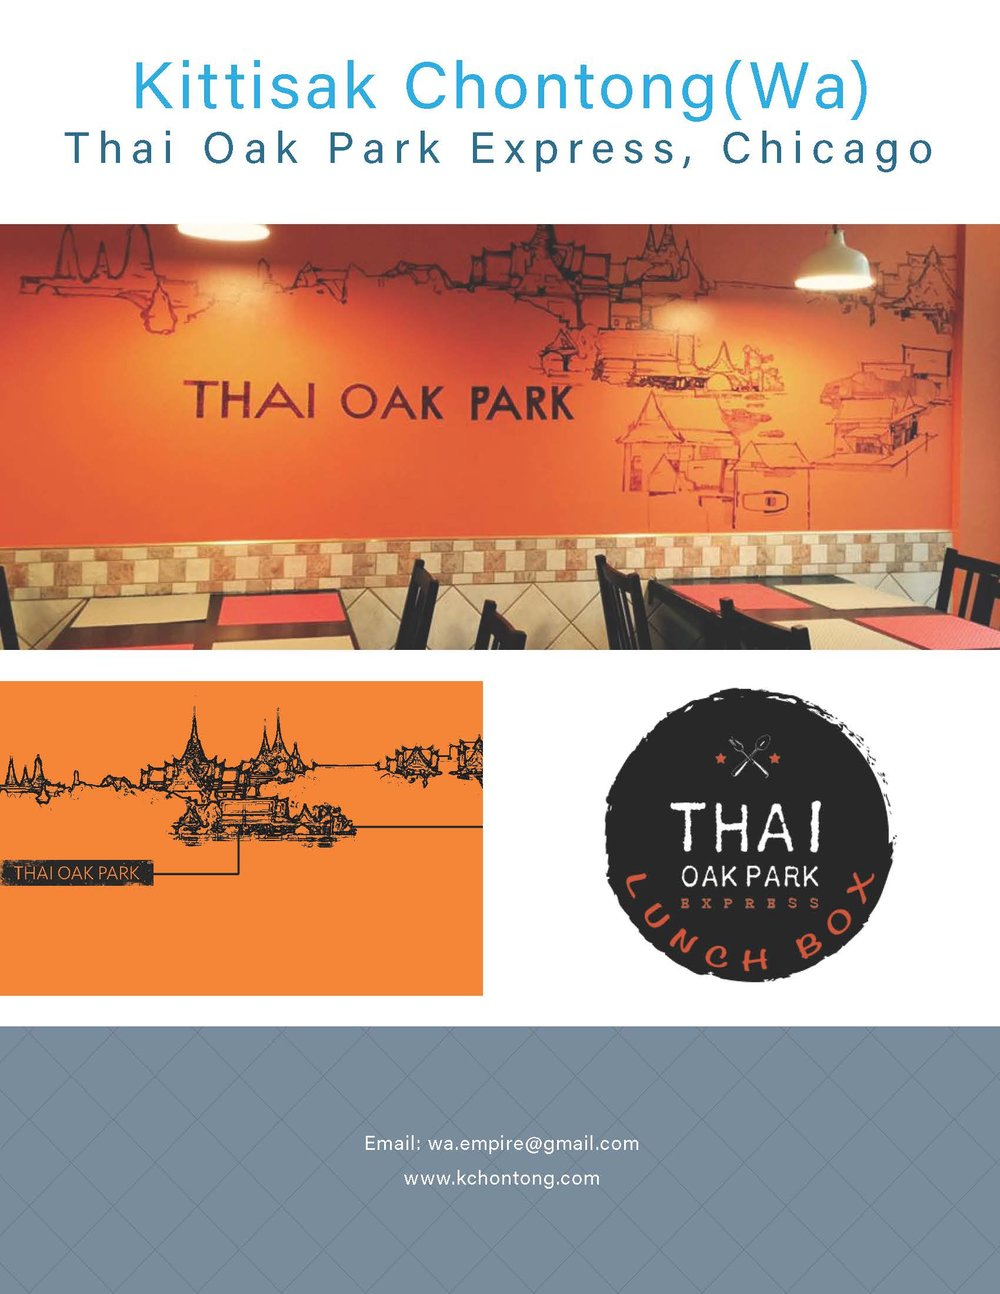 Mural painting for Thai Oak Park Express, Chicago